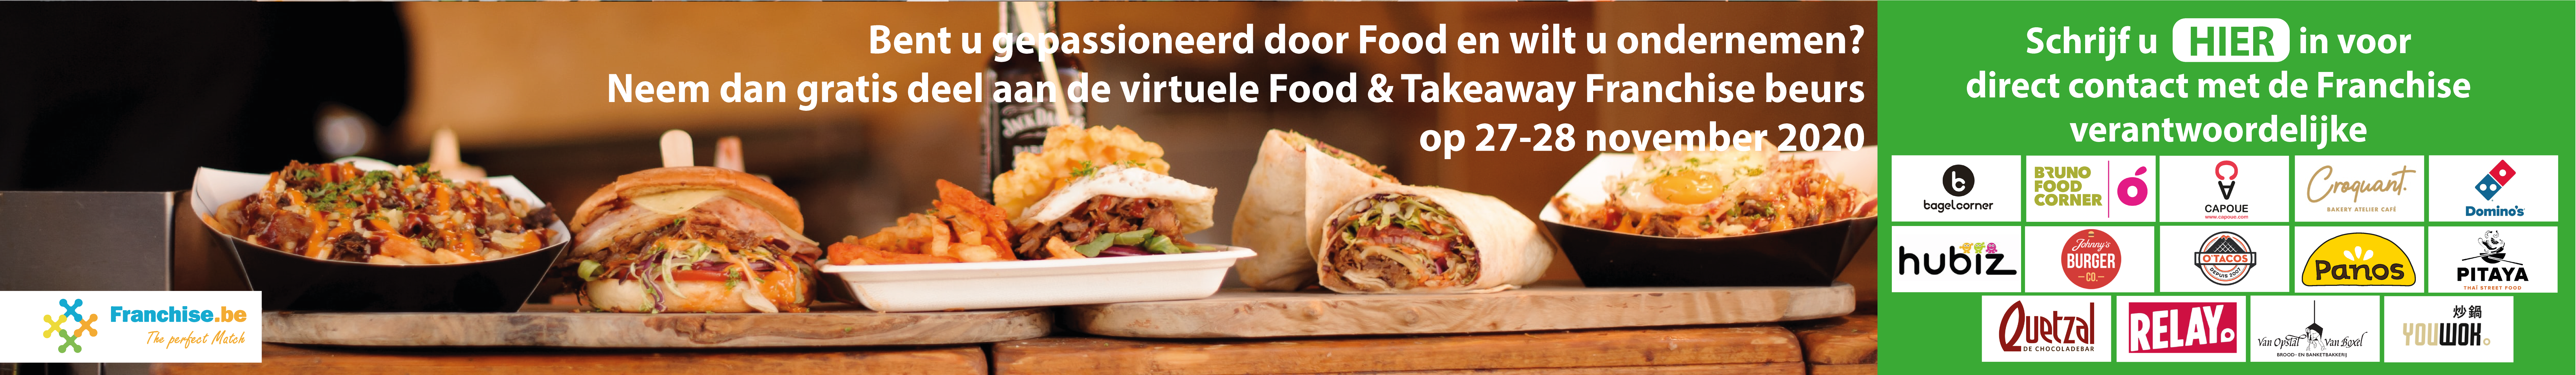 Neem Gratis deel aan de Virtuele Food & Takeaway Franchisebeurs op 27-28 November